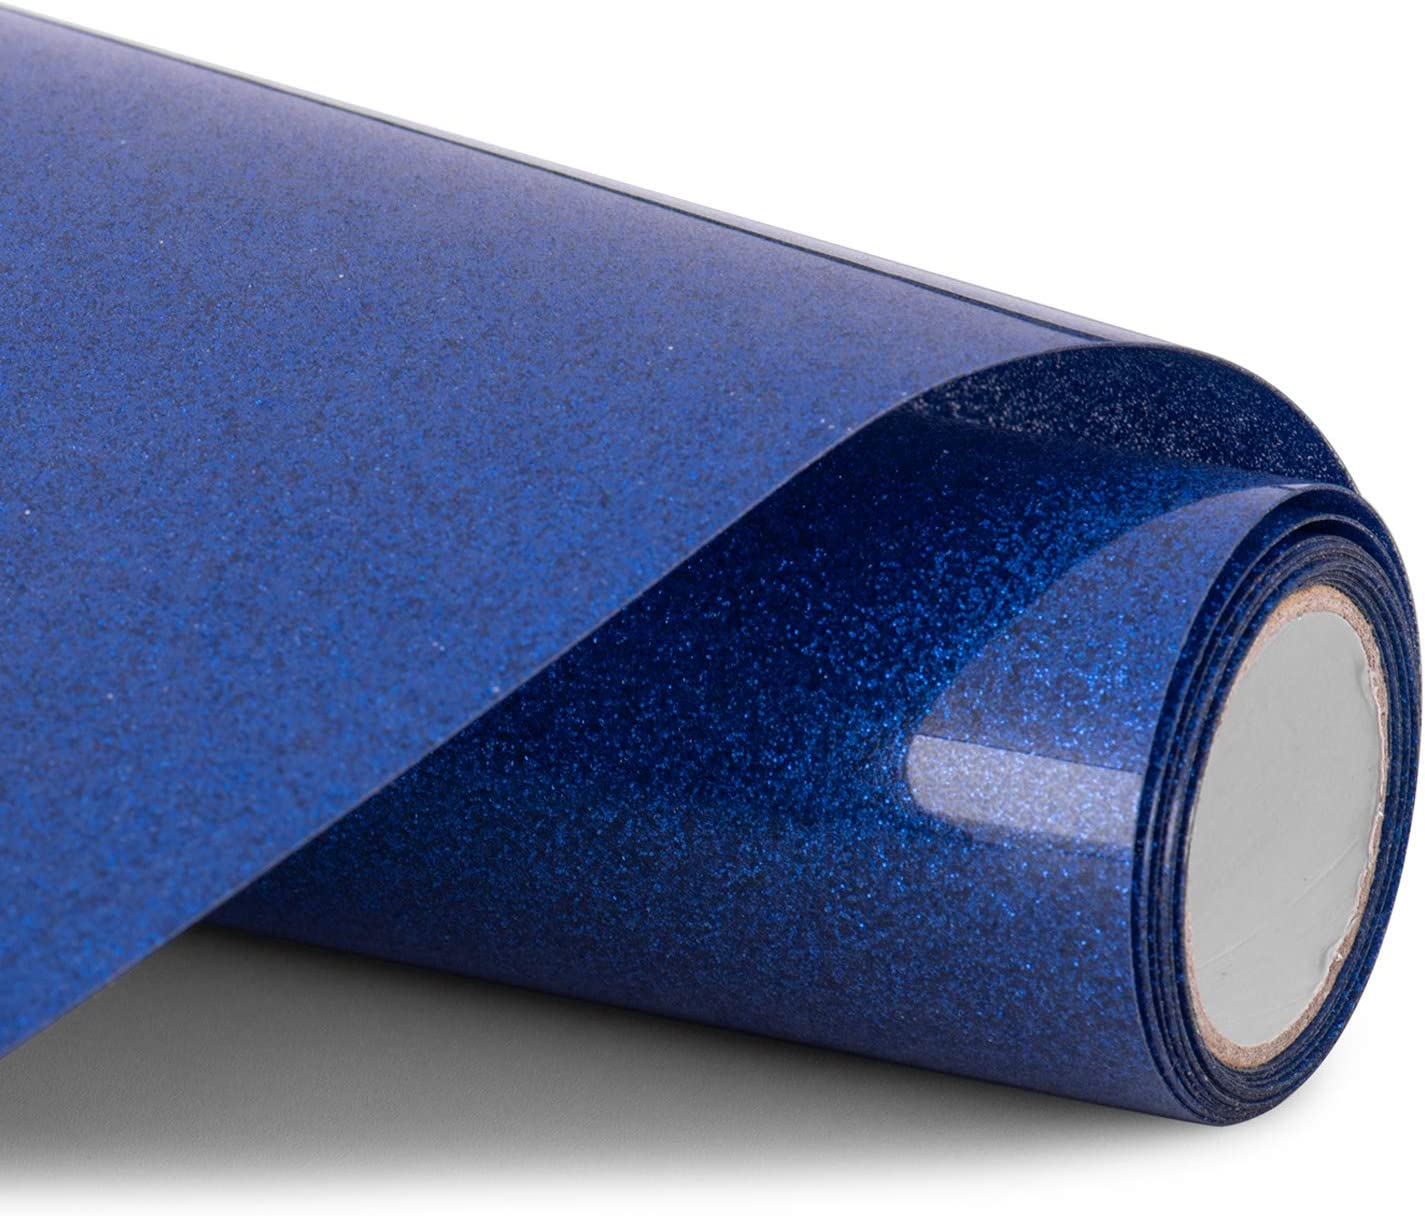 Glitter HTV Vinyl - 12inch x 5ft PU Heat Transfer Vinyl roll for Silhouette Cameo & Cricut Easy to Cut, Weed and Transfer, Iron On Htv Vinyl Design for T-Shirt, Clothes and Other Textiles(Blue)